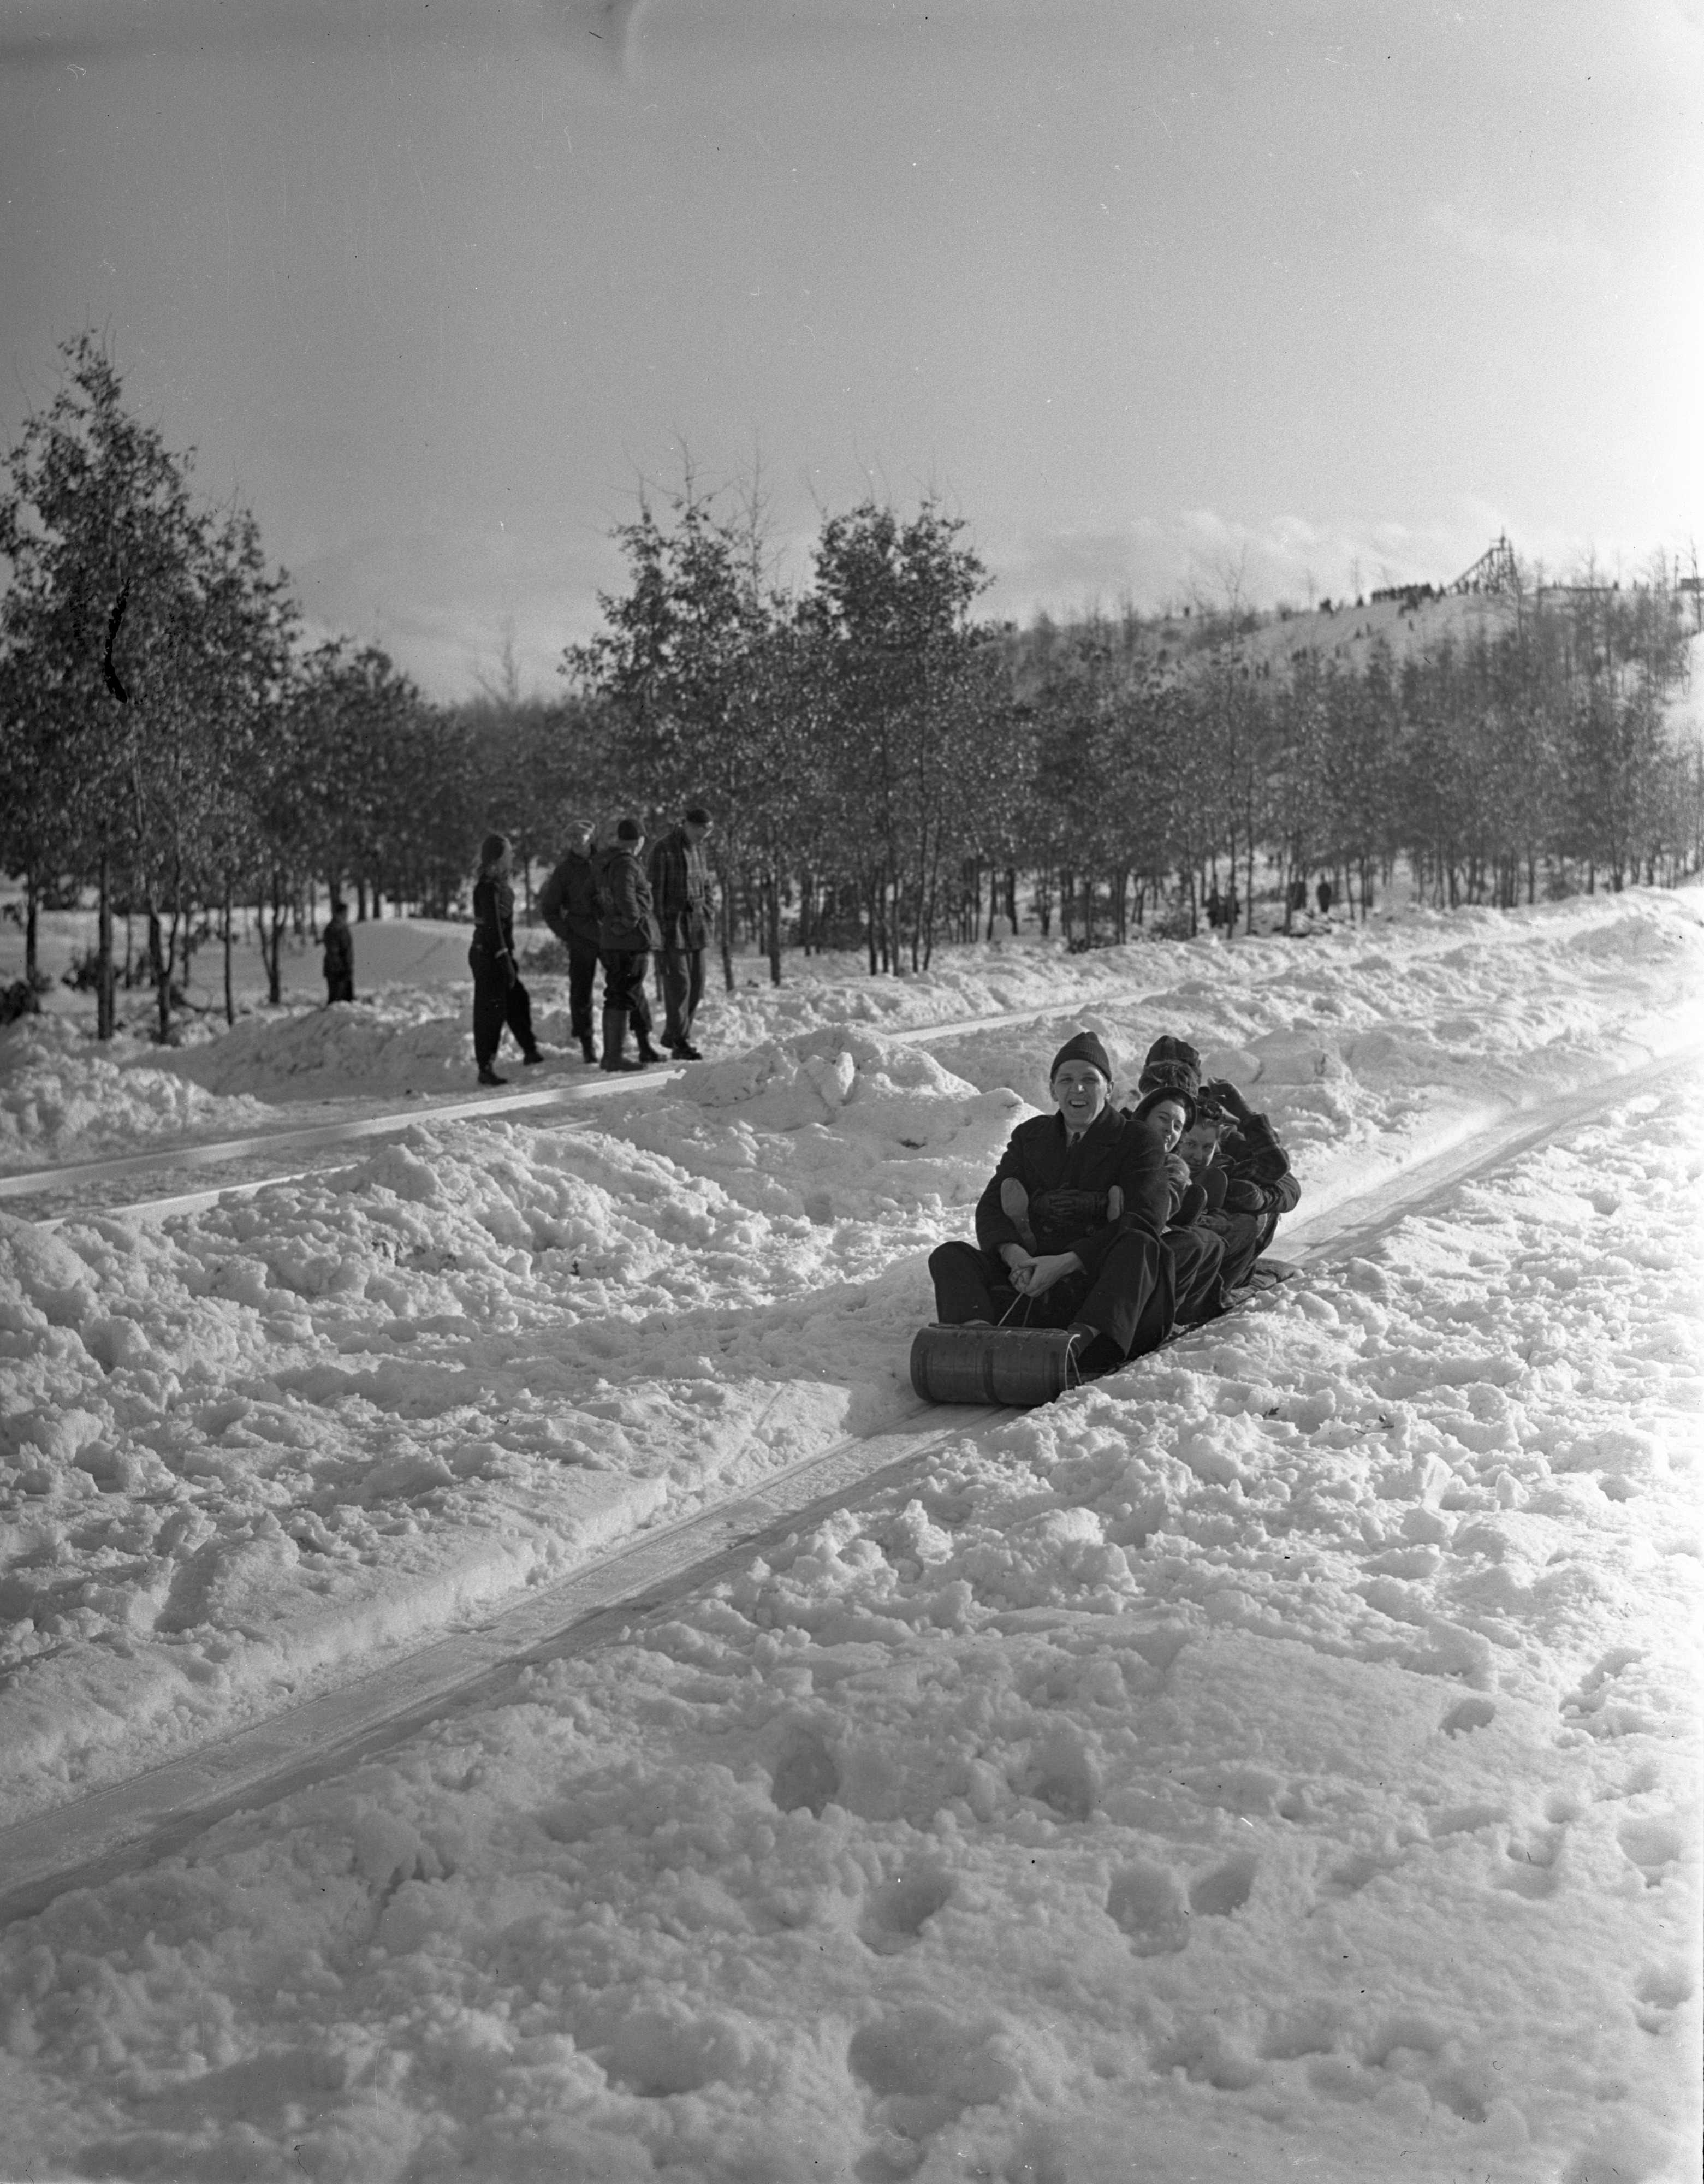 Group Finishes The Toboggan Slide At Grayling Winter Sports Park, January 1940 image